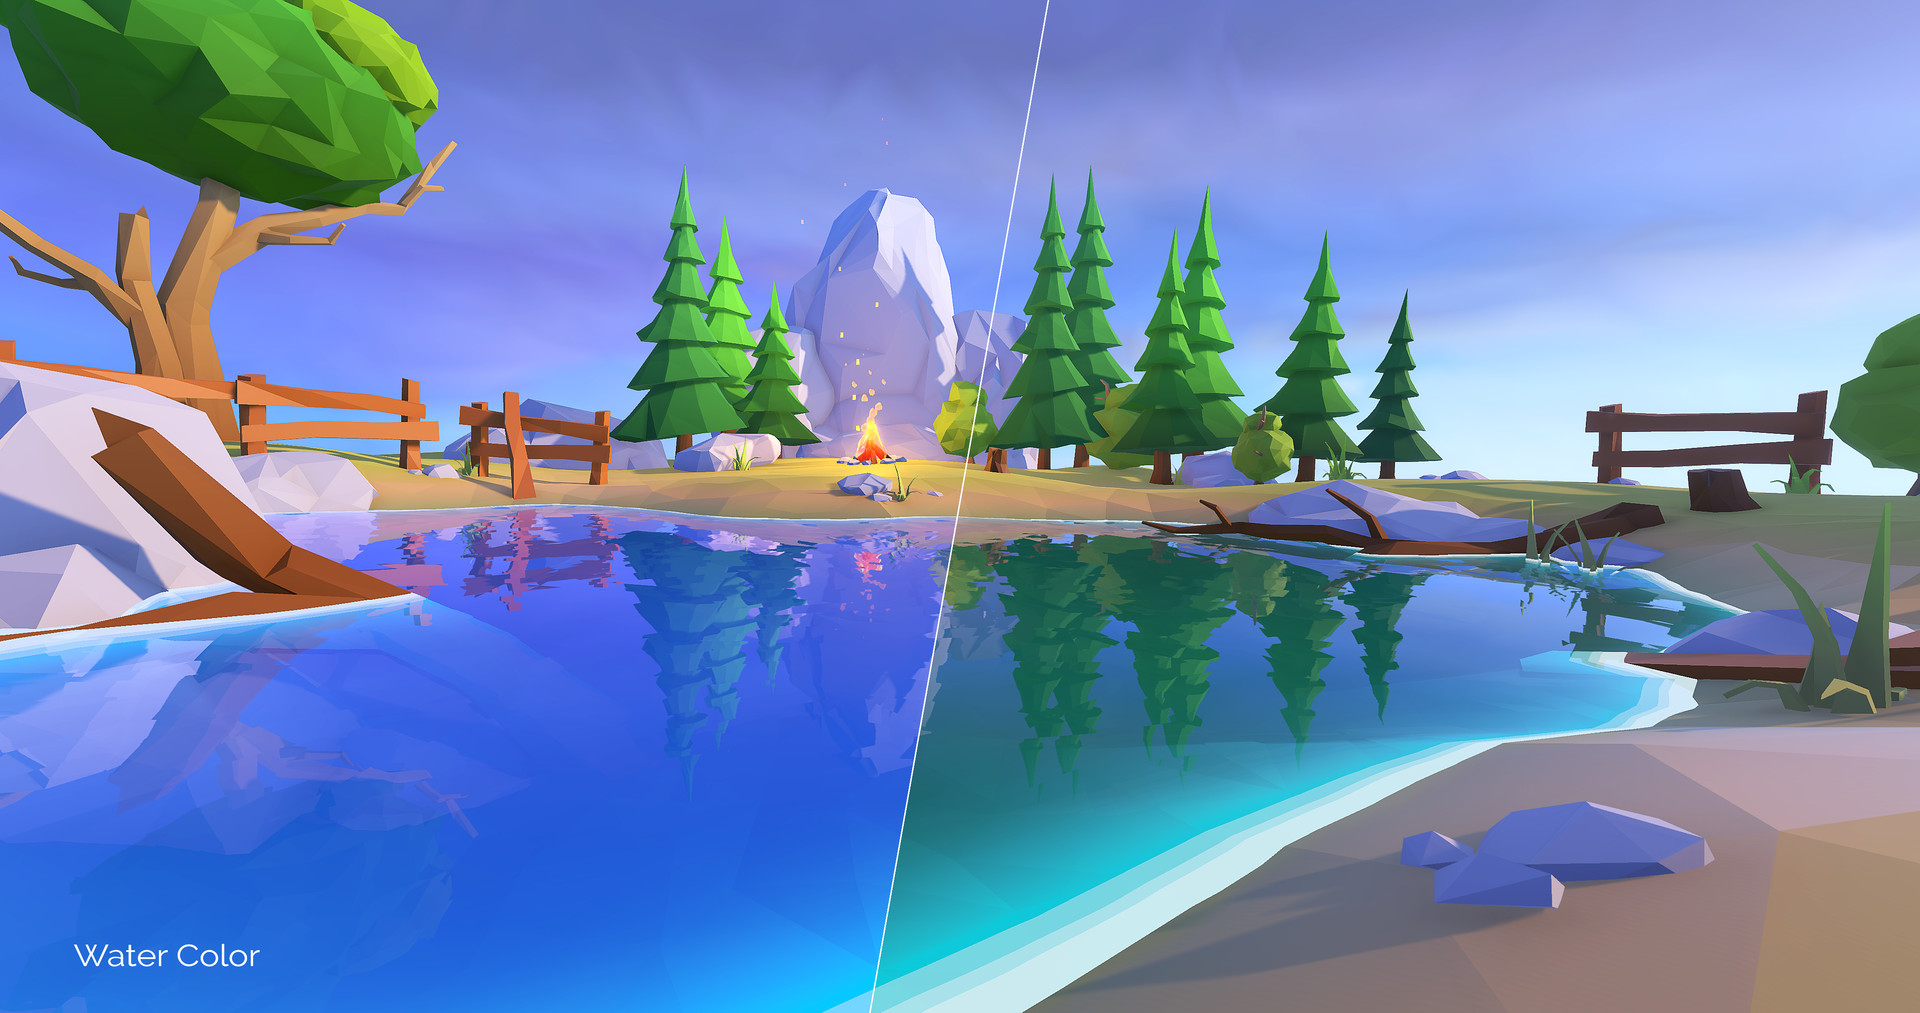 ArtStation - Lowpoly Water Shaders V2 for Unity , Cristian Pop